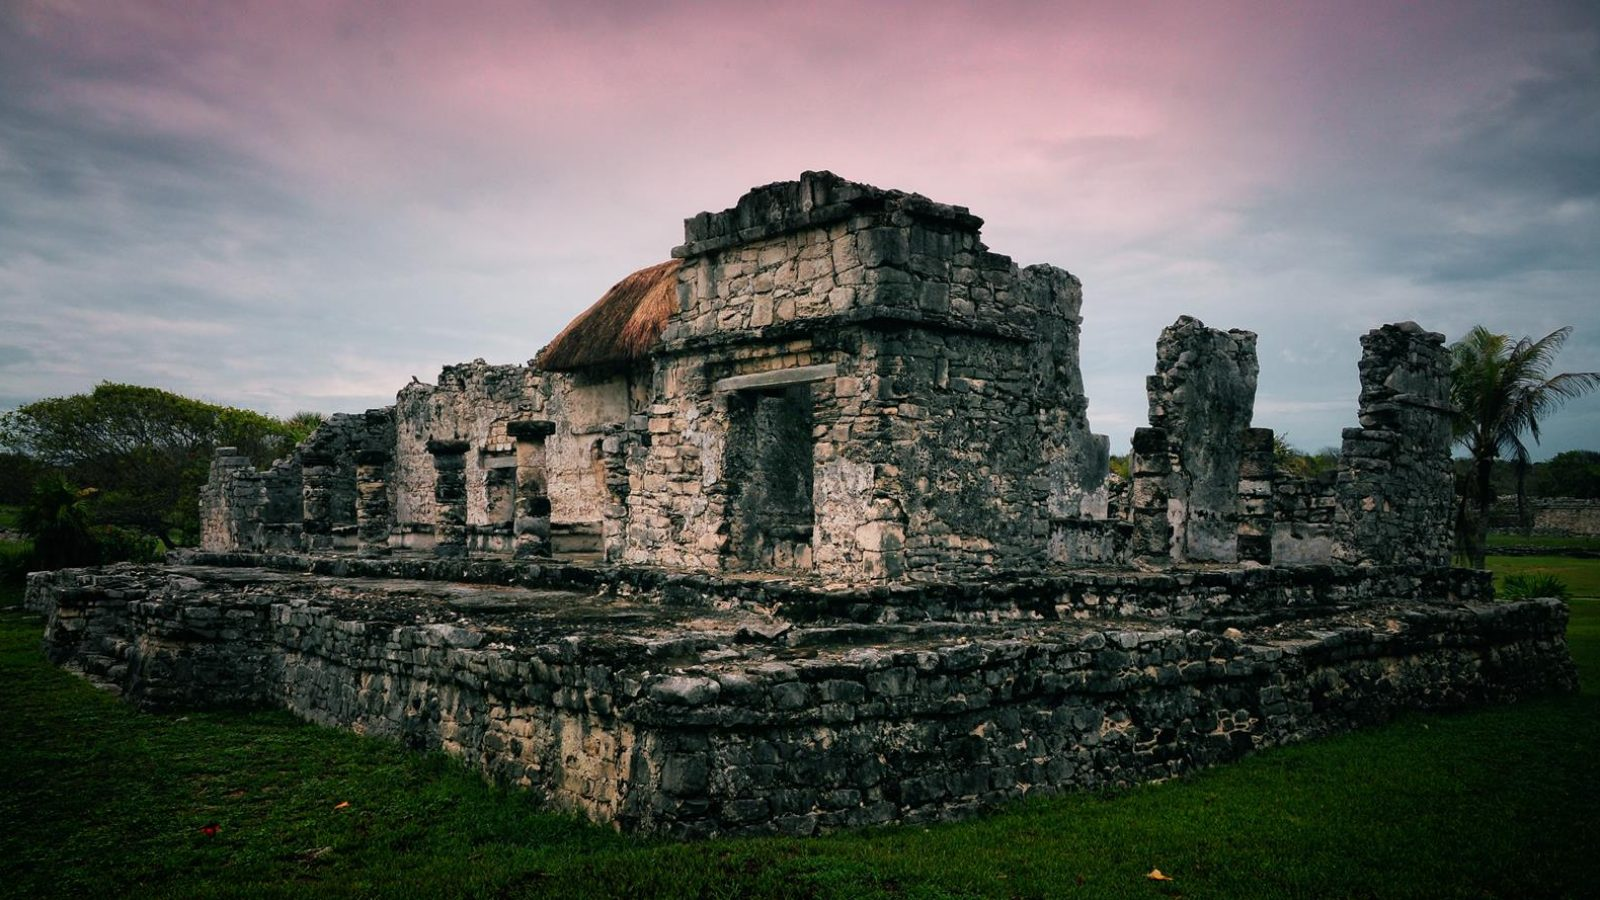 The ancient mayan city ruins, Tulum